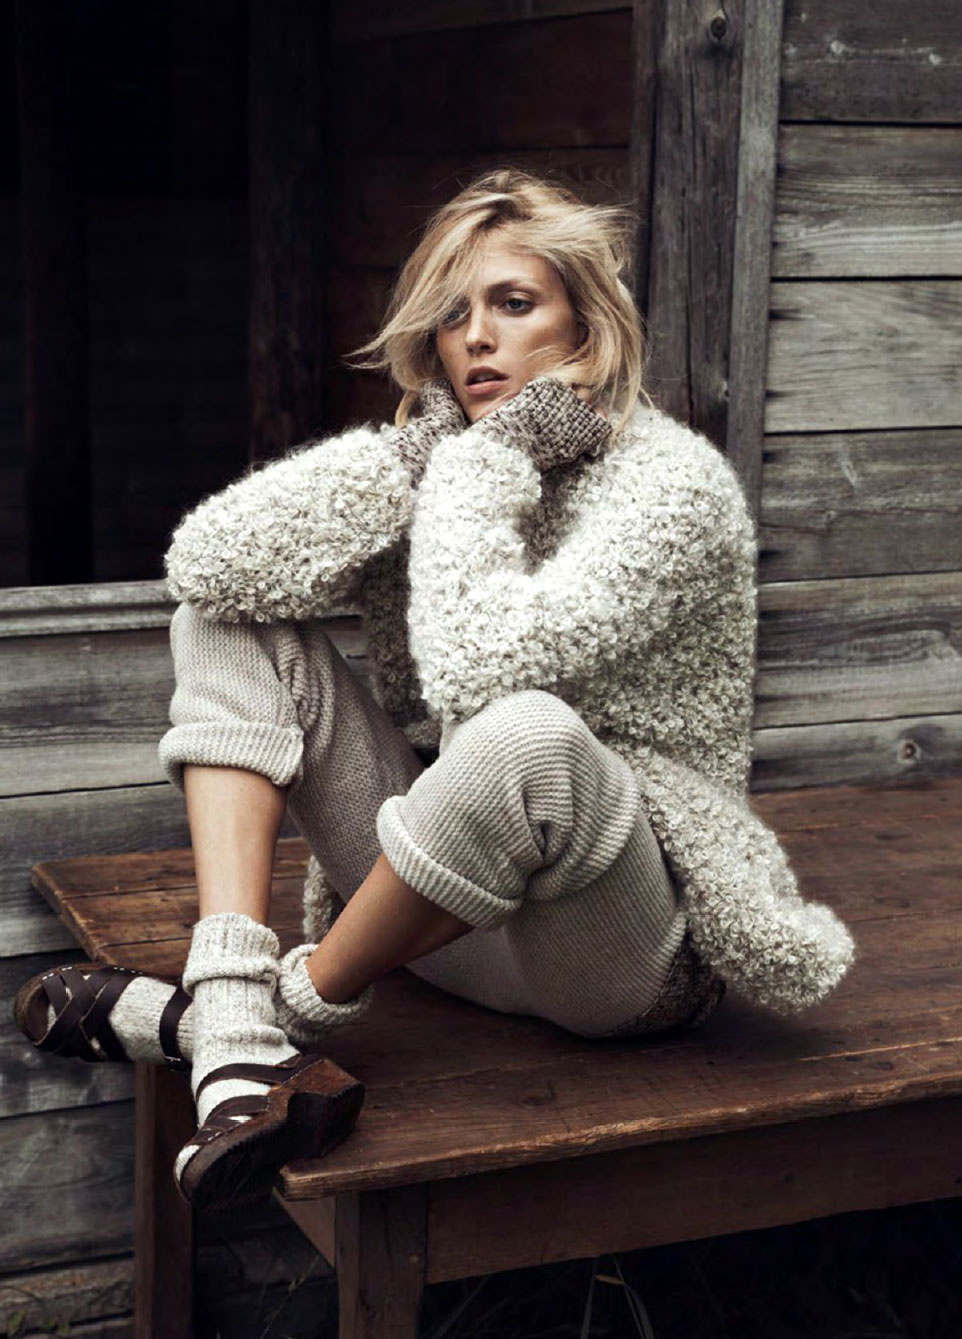 Anja Rubik in Into the Wild | Vogue Paris October 2014 (photography: Lachlan Bailey, styling: Geraldine Saglio)